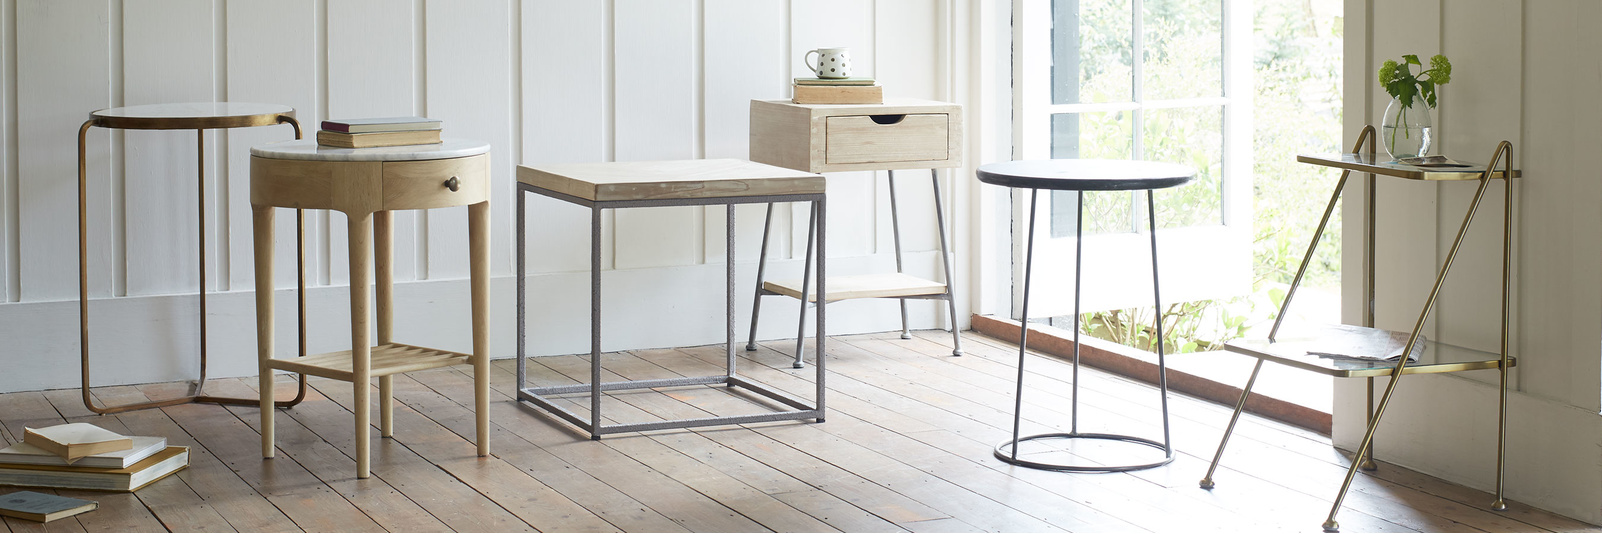 Side table range